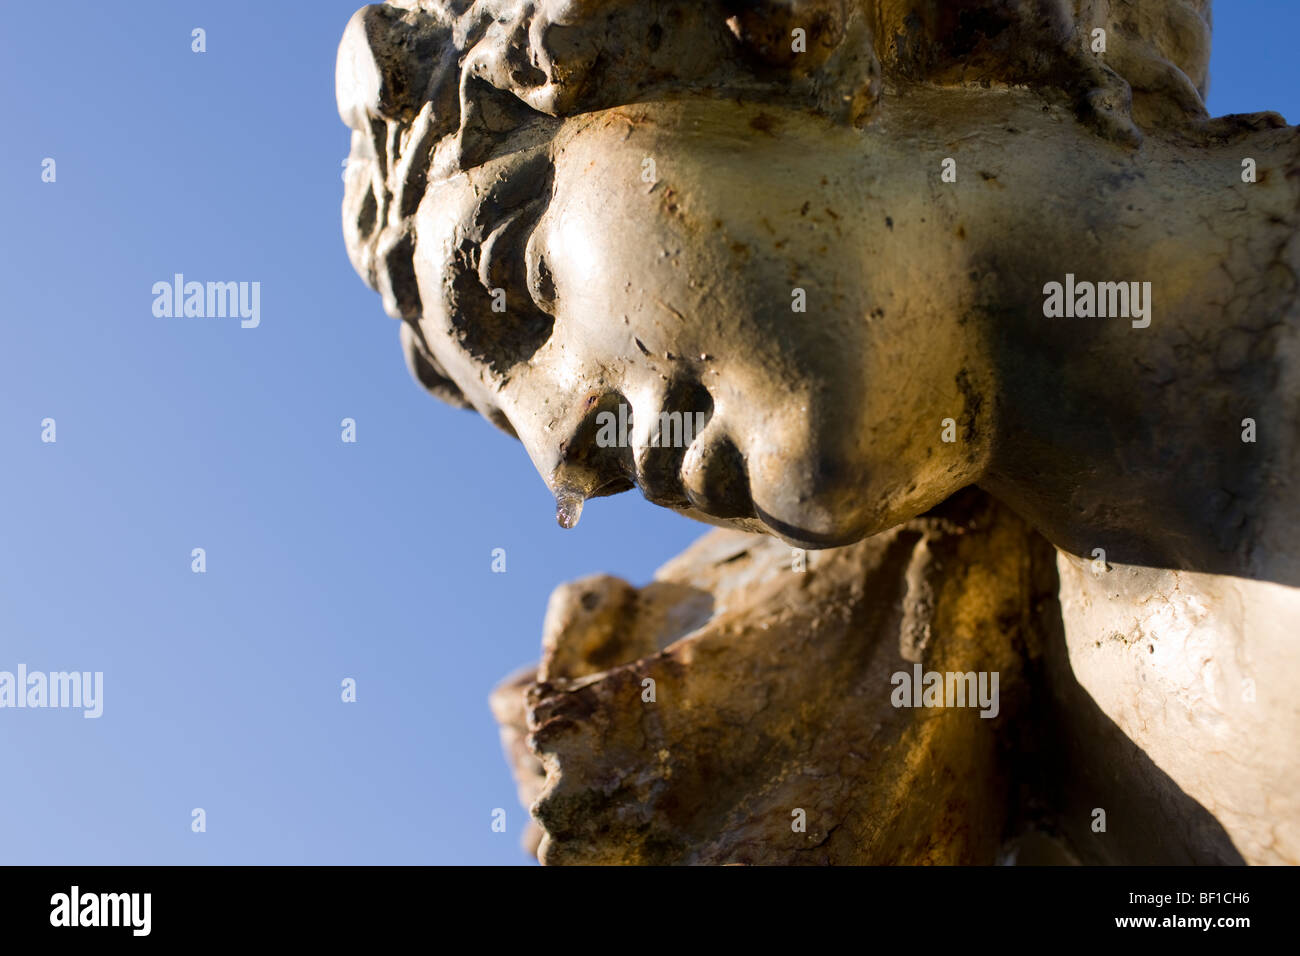 A female statue with the noose dripping, Sweden. - Stock Image